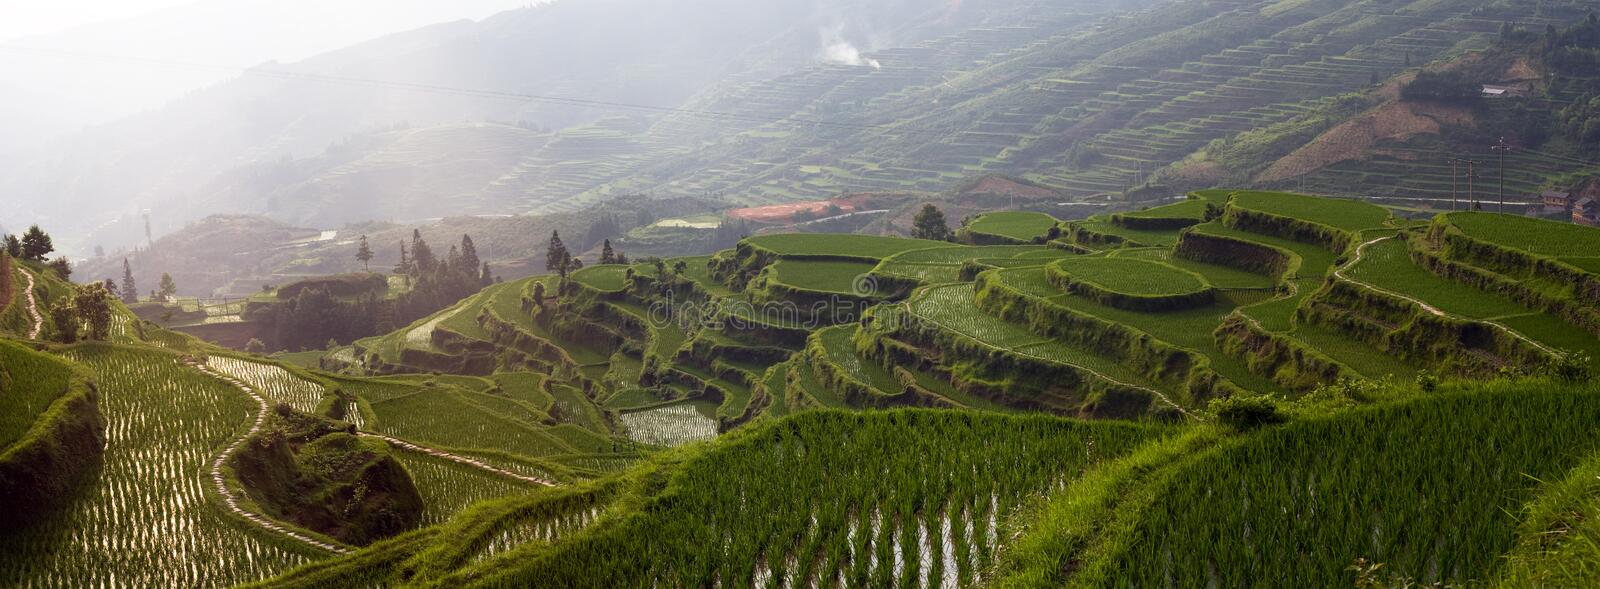 Rice terrace on the mountain stock images